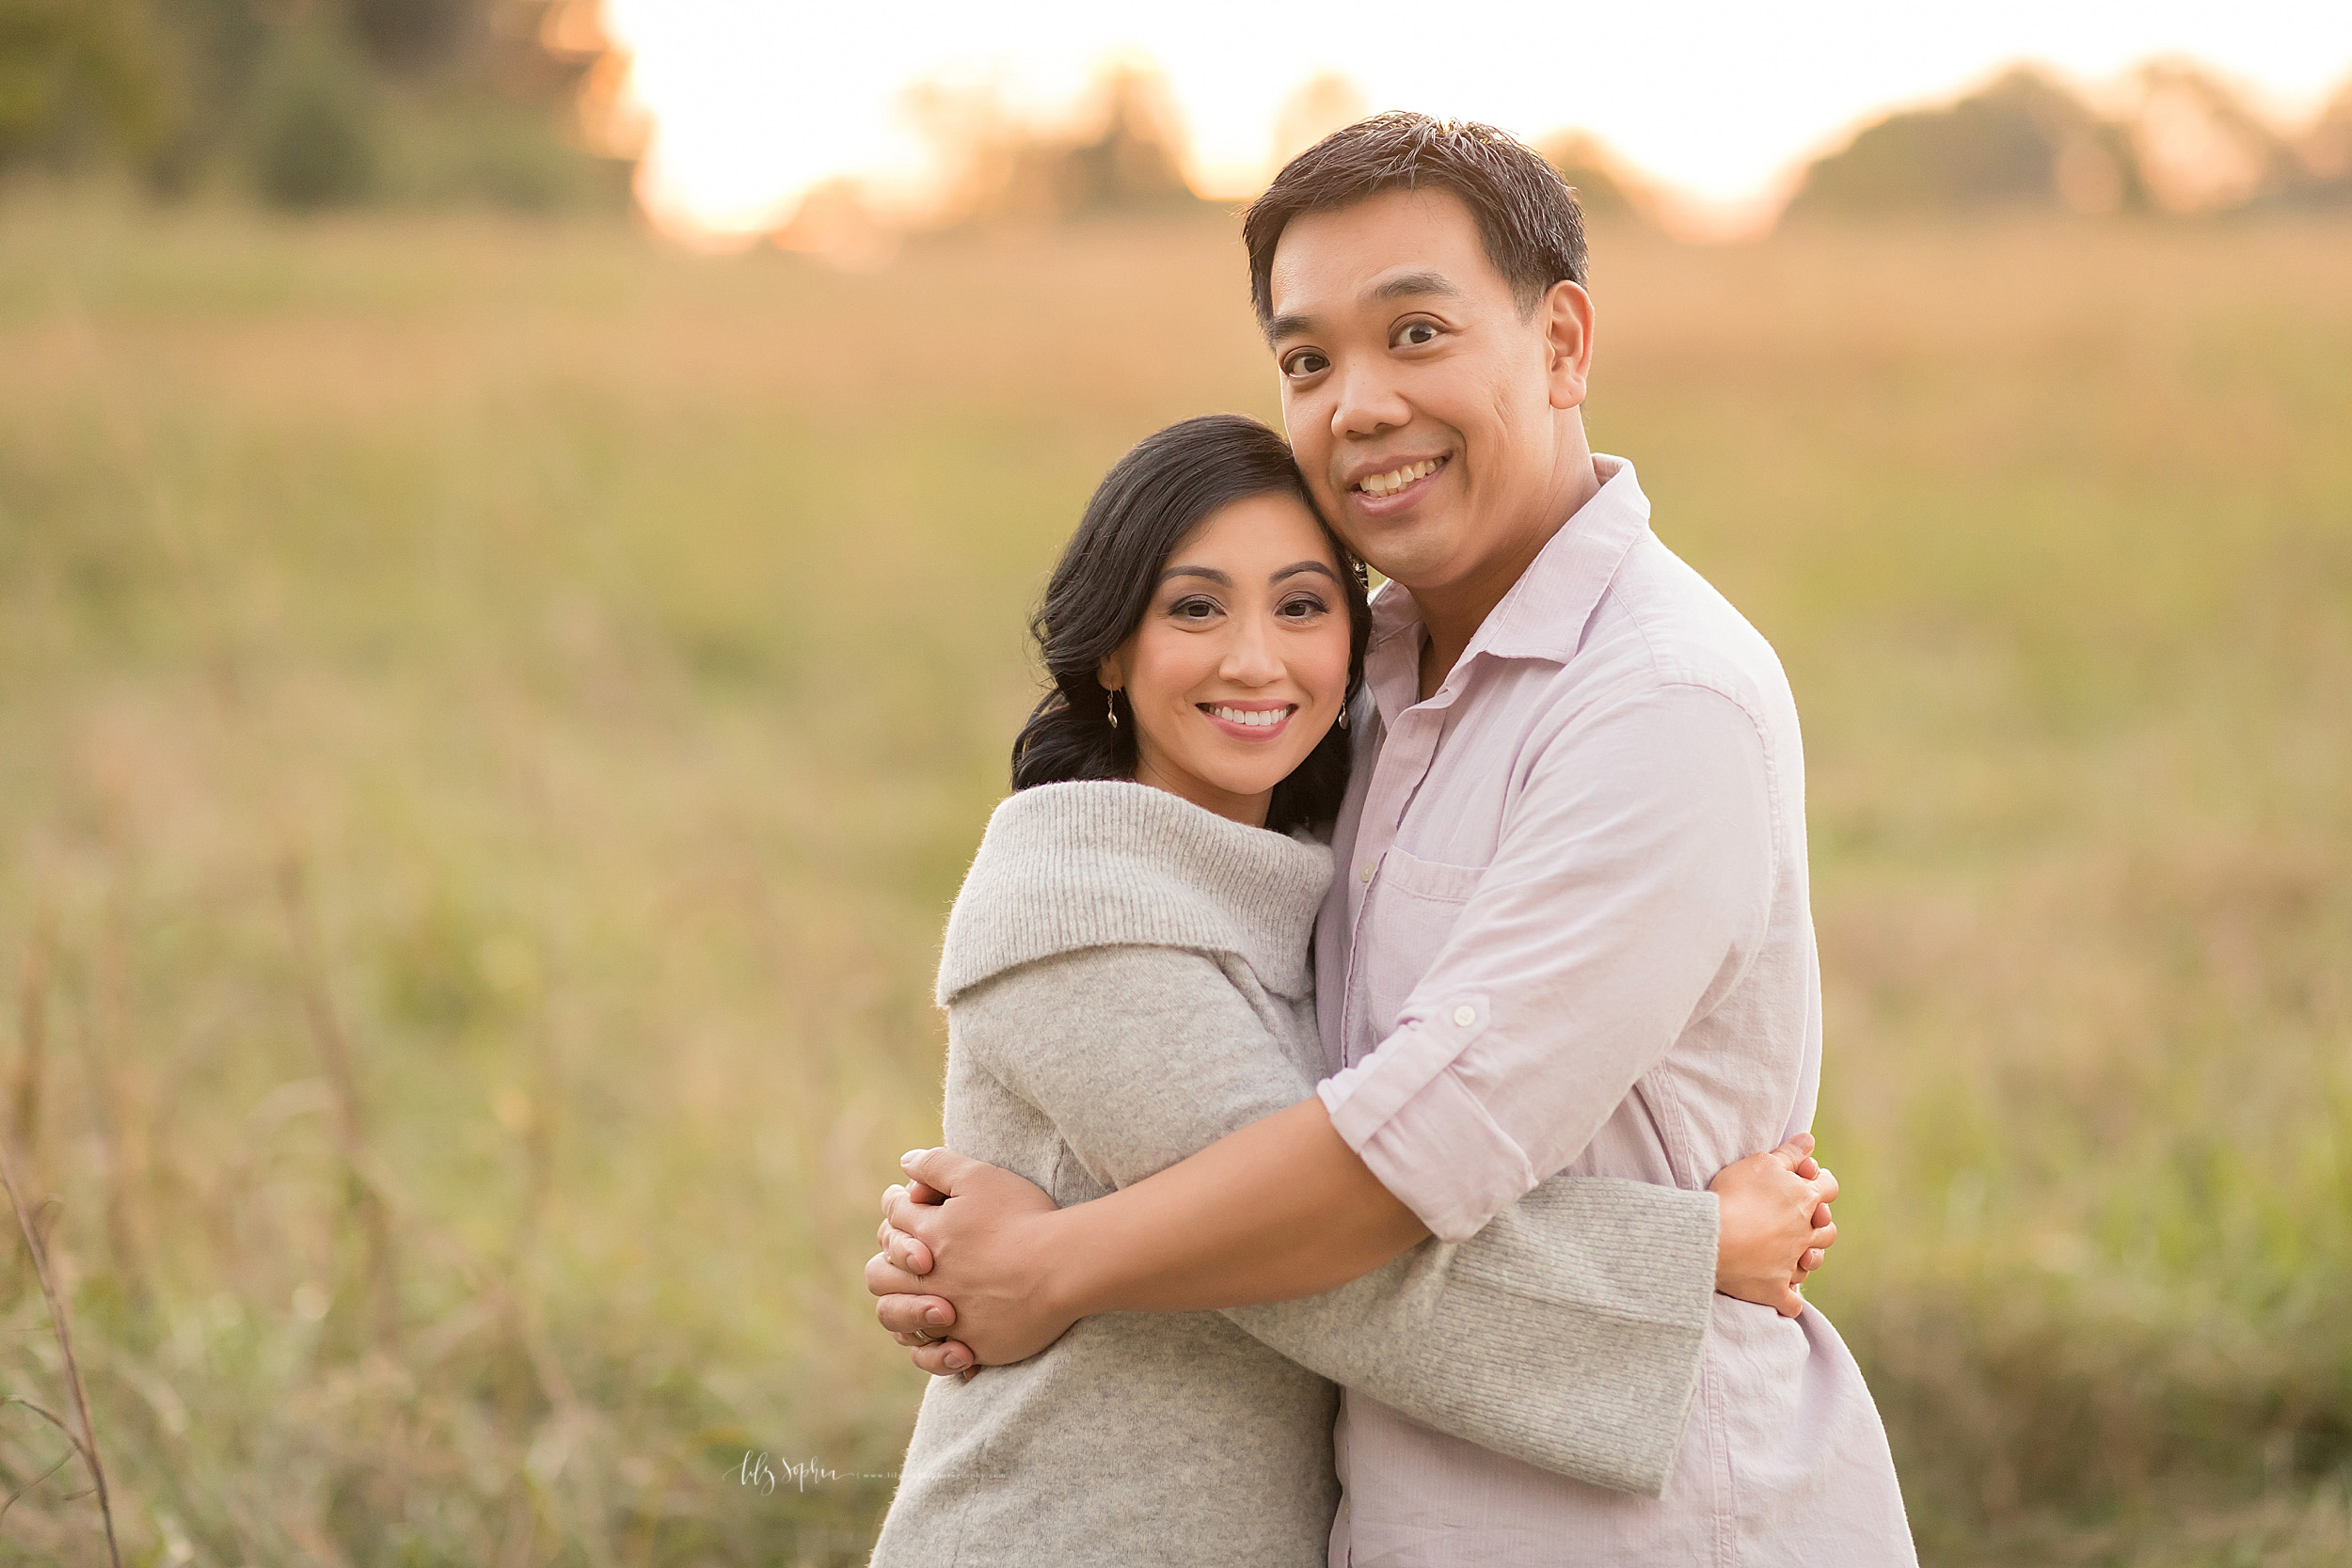 Image of a happy Asian couple hugging one another in a field at sunset.  The husband and wife are standing facing one another and they both have their arms around each other's waists.  The wife is wearing a gray cowl neck sweater with bell sleeves and blue jeans.  The husband is wearing a roll tab pink cotton button down shirt and blue jeans.